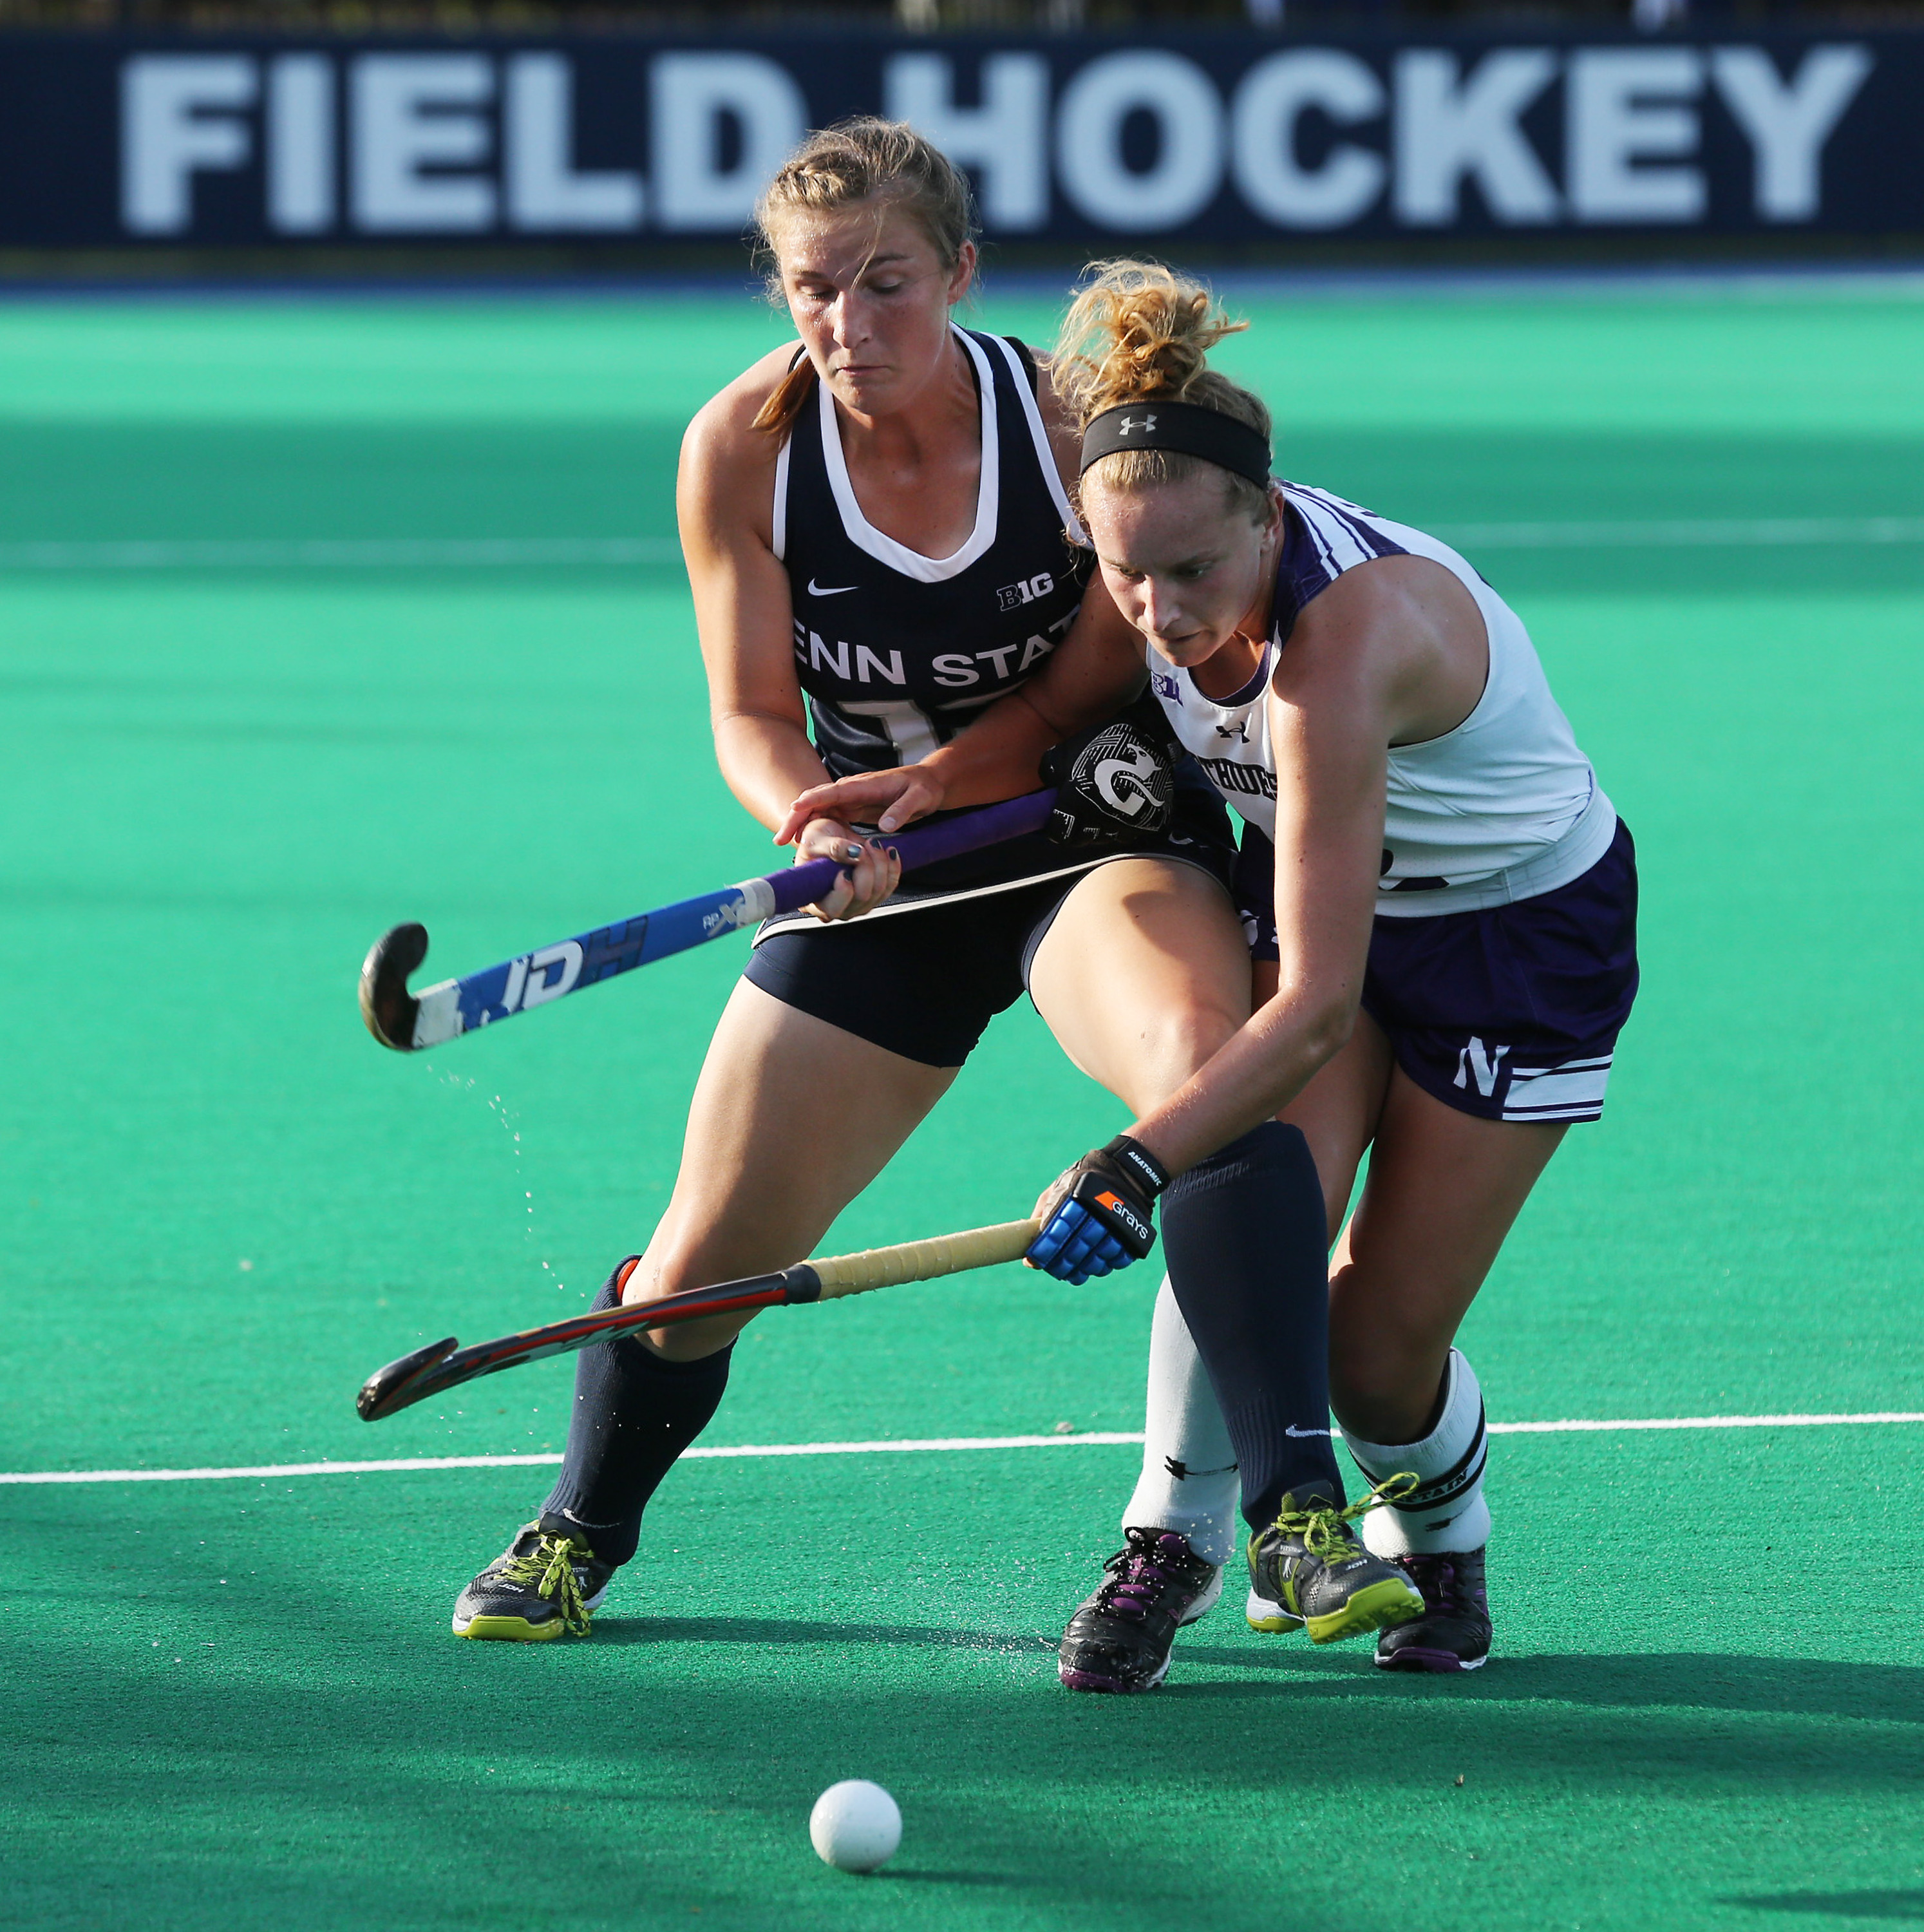 FH No. 4 in Latest NFHCA Poll - Penn State University